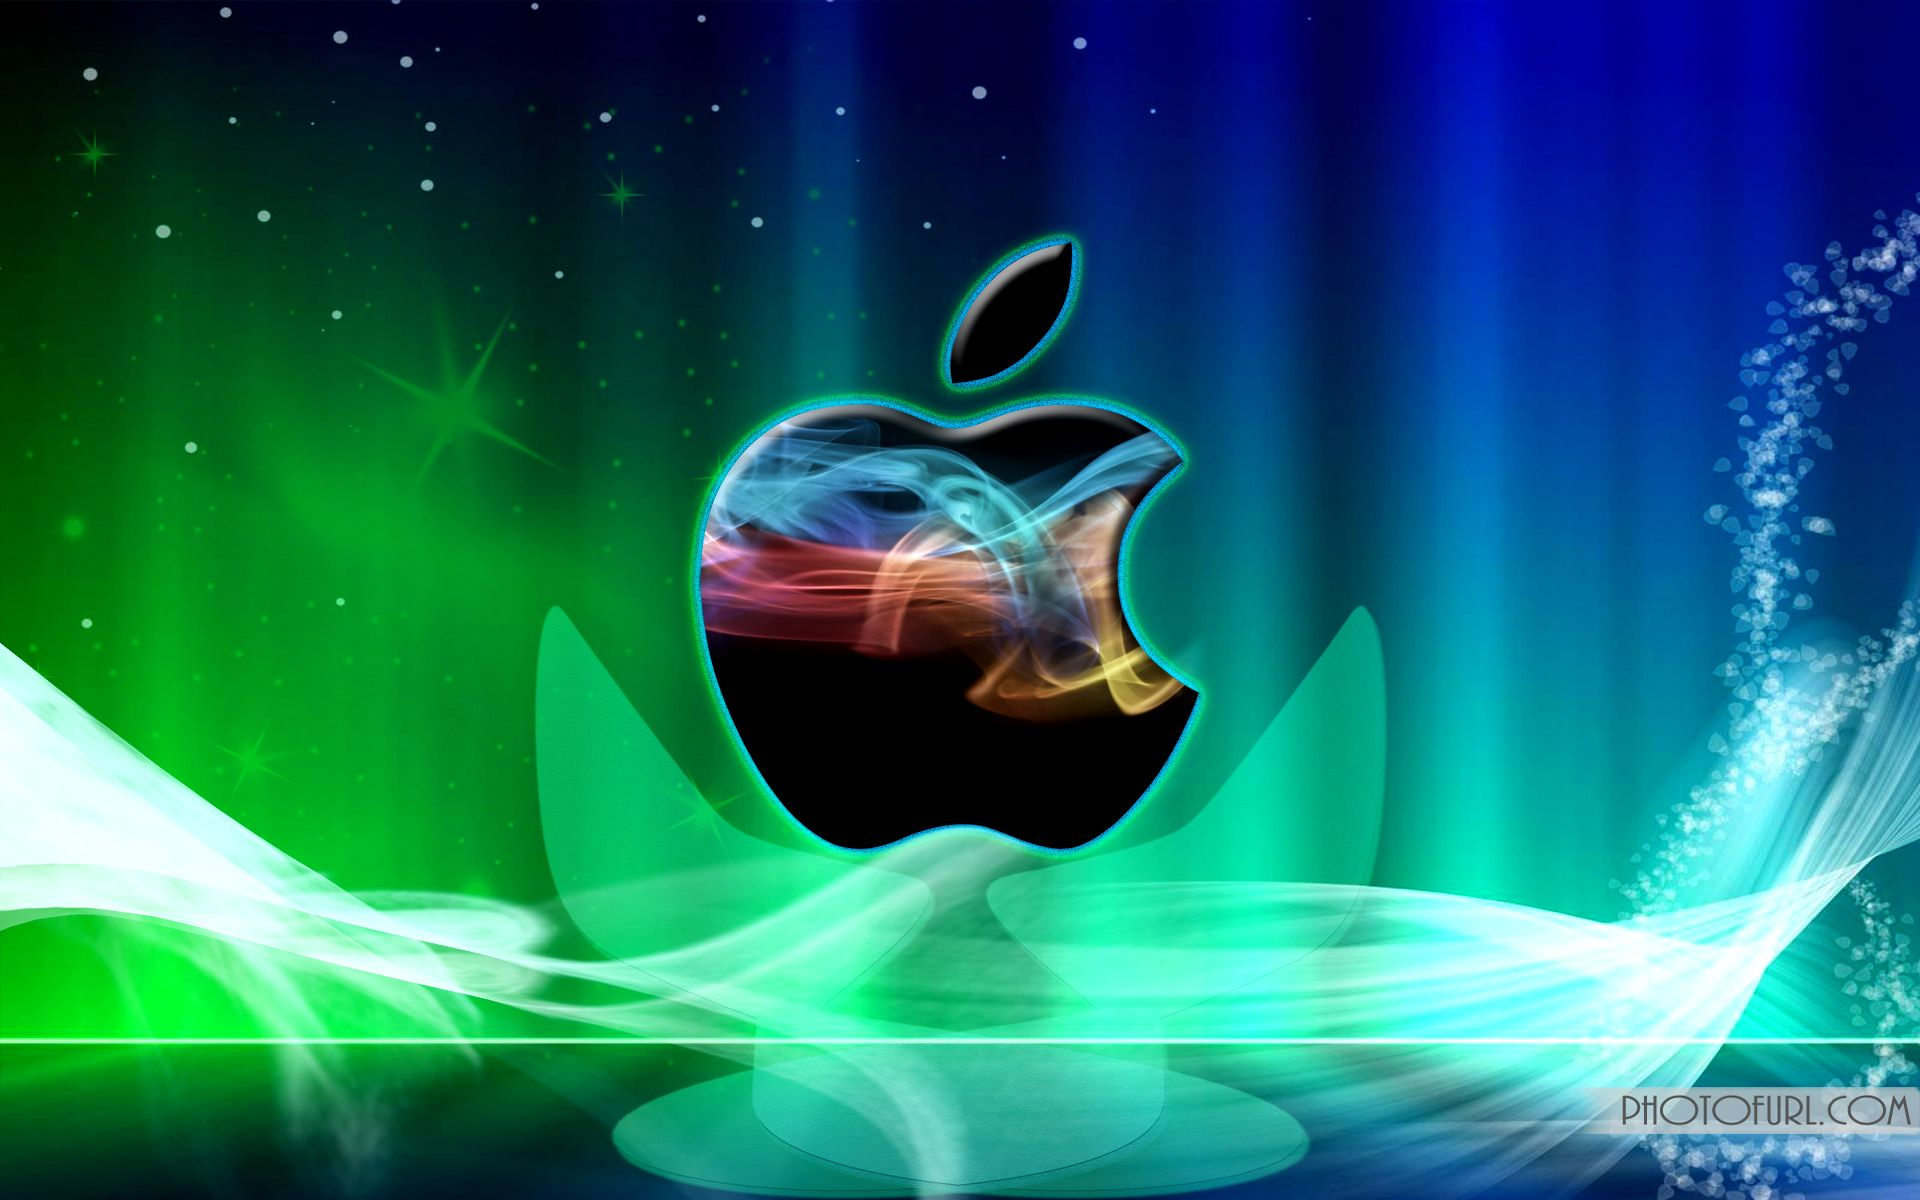 Wallpaper download apple - Download Iphone Apple Hd Widescreen Images For Your Desktop Mobile Iphone Or Ipad